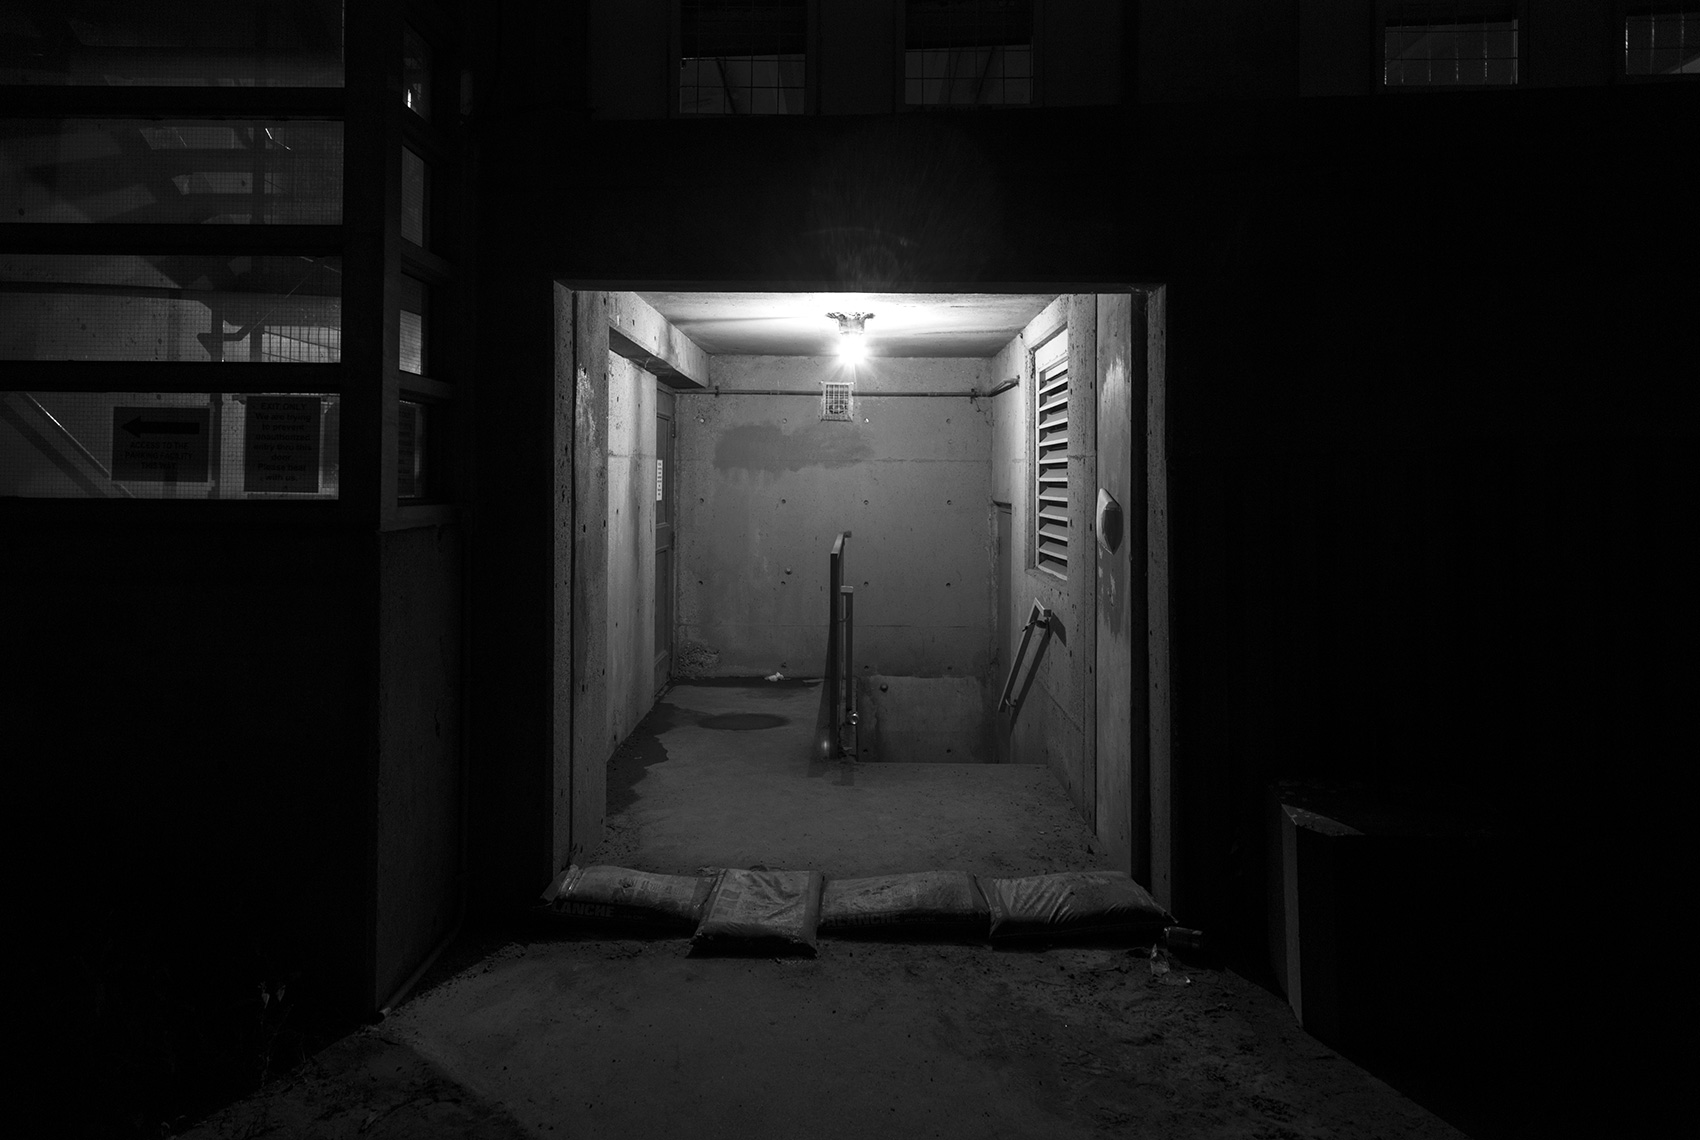 20141001. An door-less flood-prone parkade vestibule at night. M